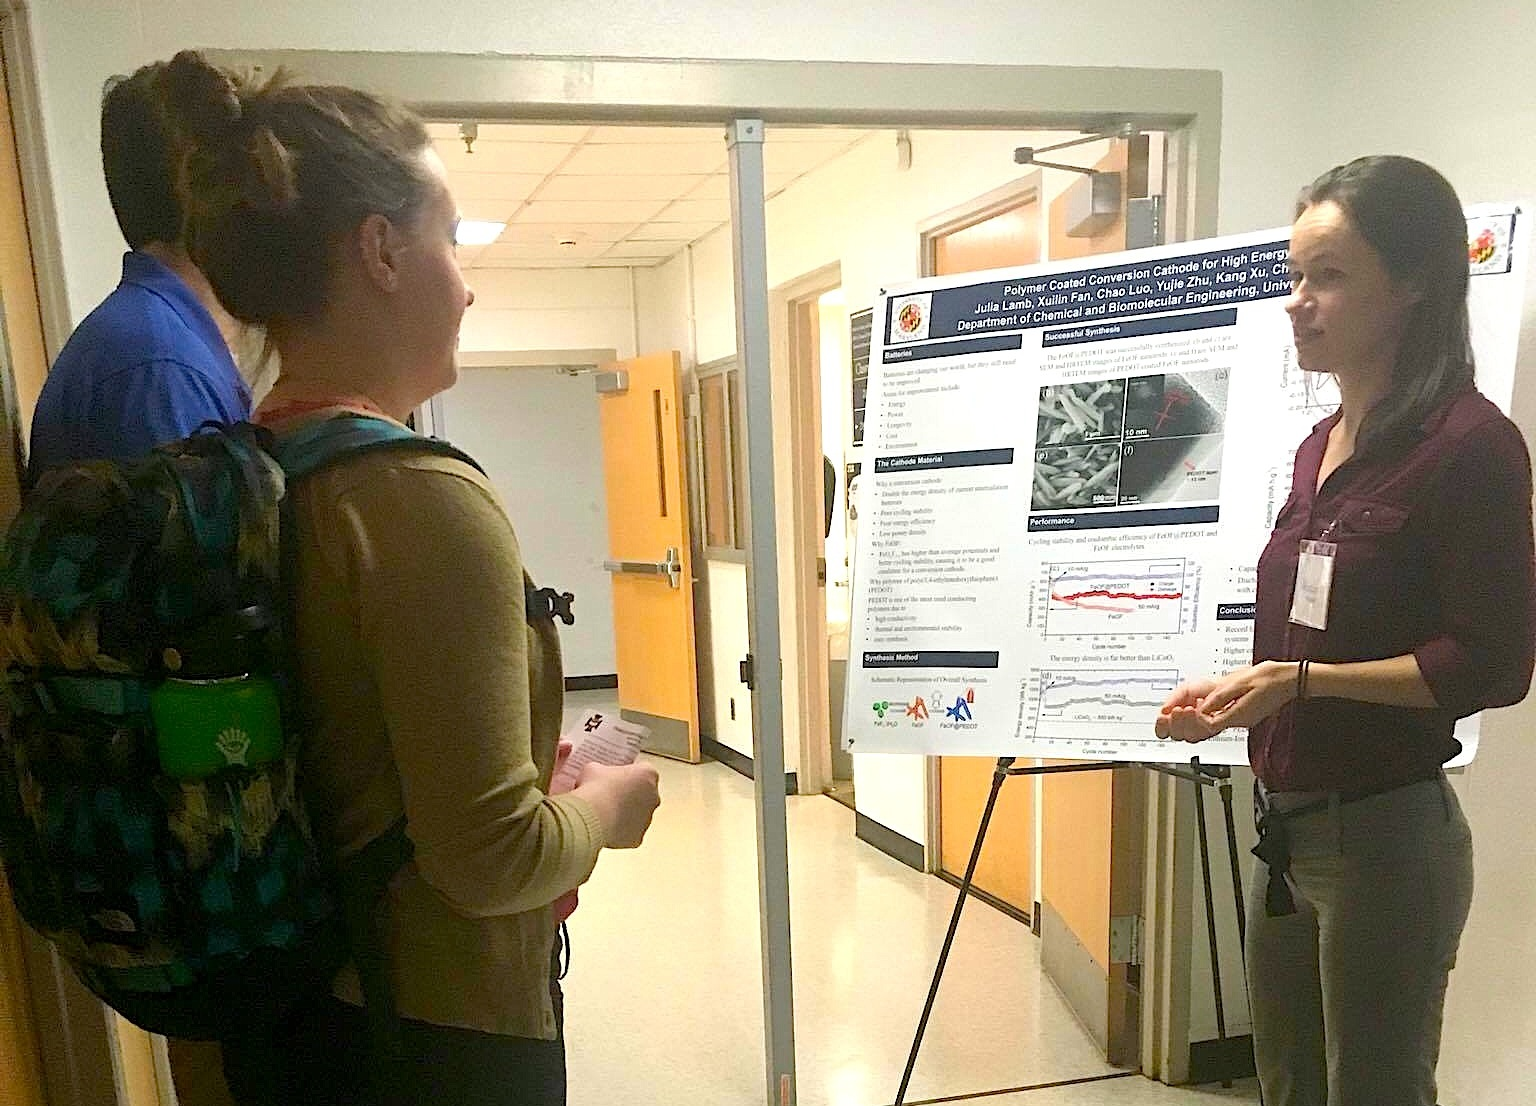 ChBE Undergraduate Julia Lamb discusses her research during the event.